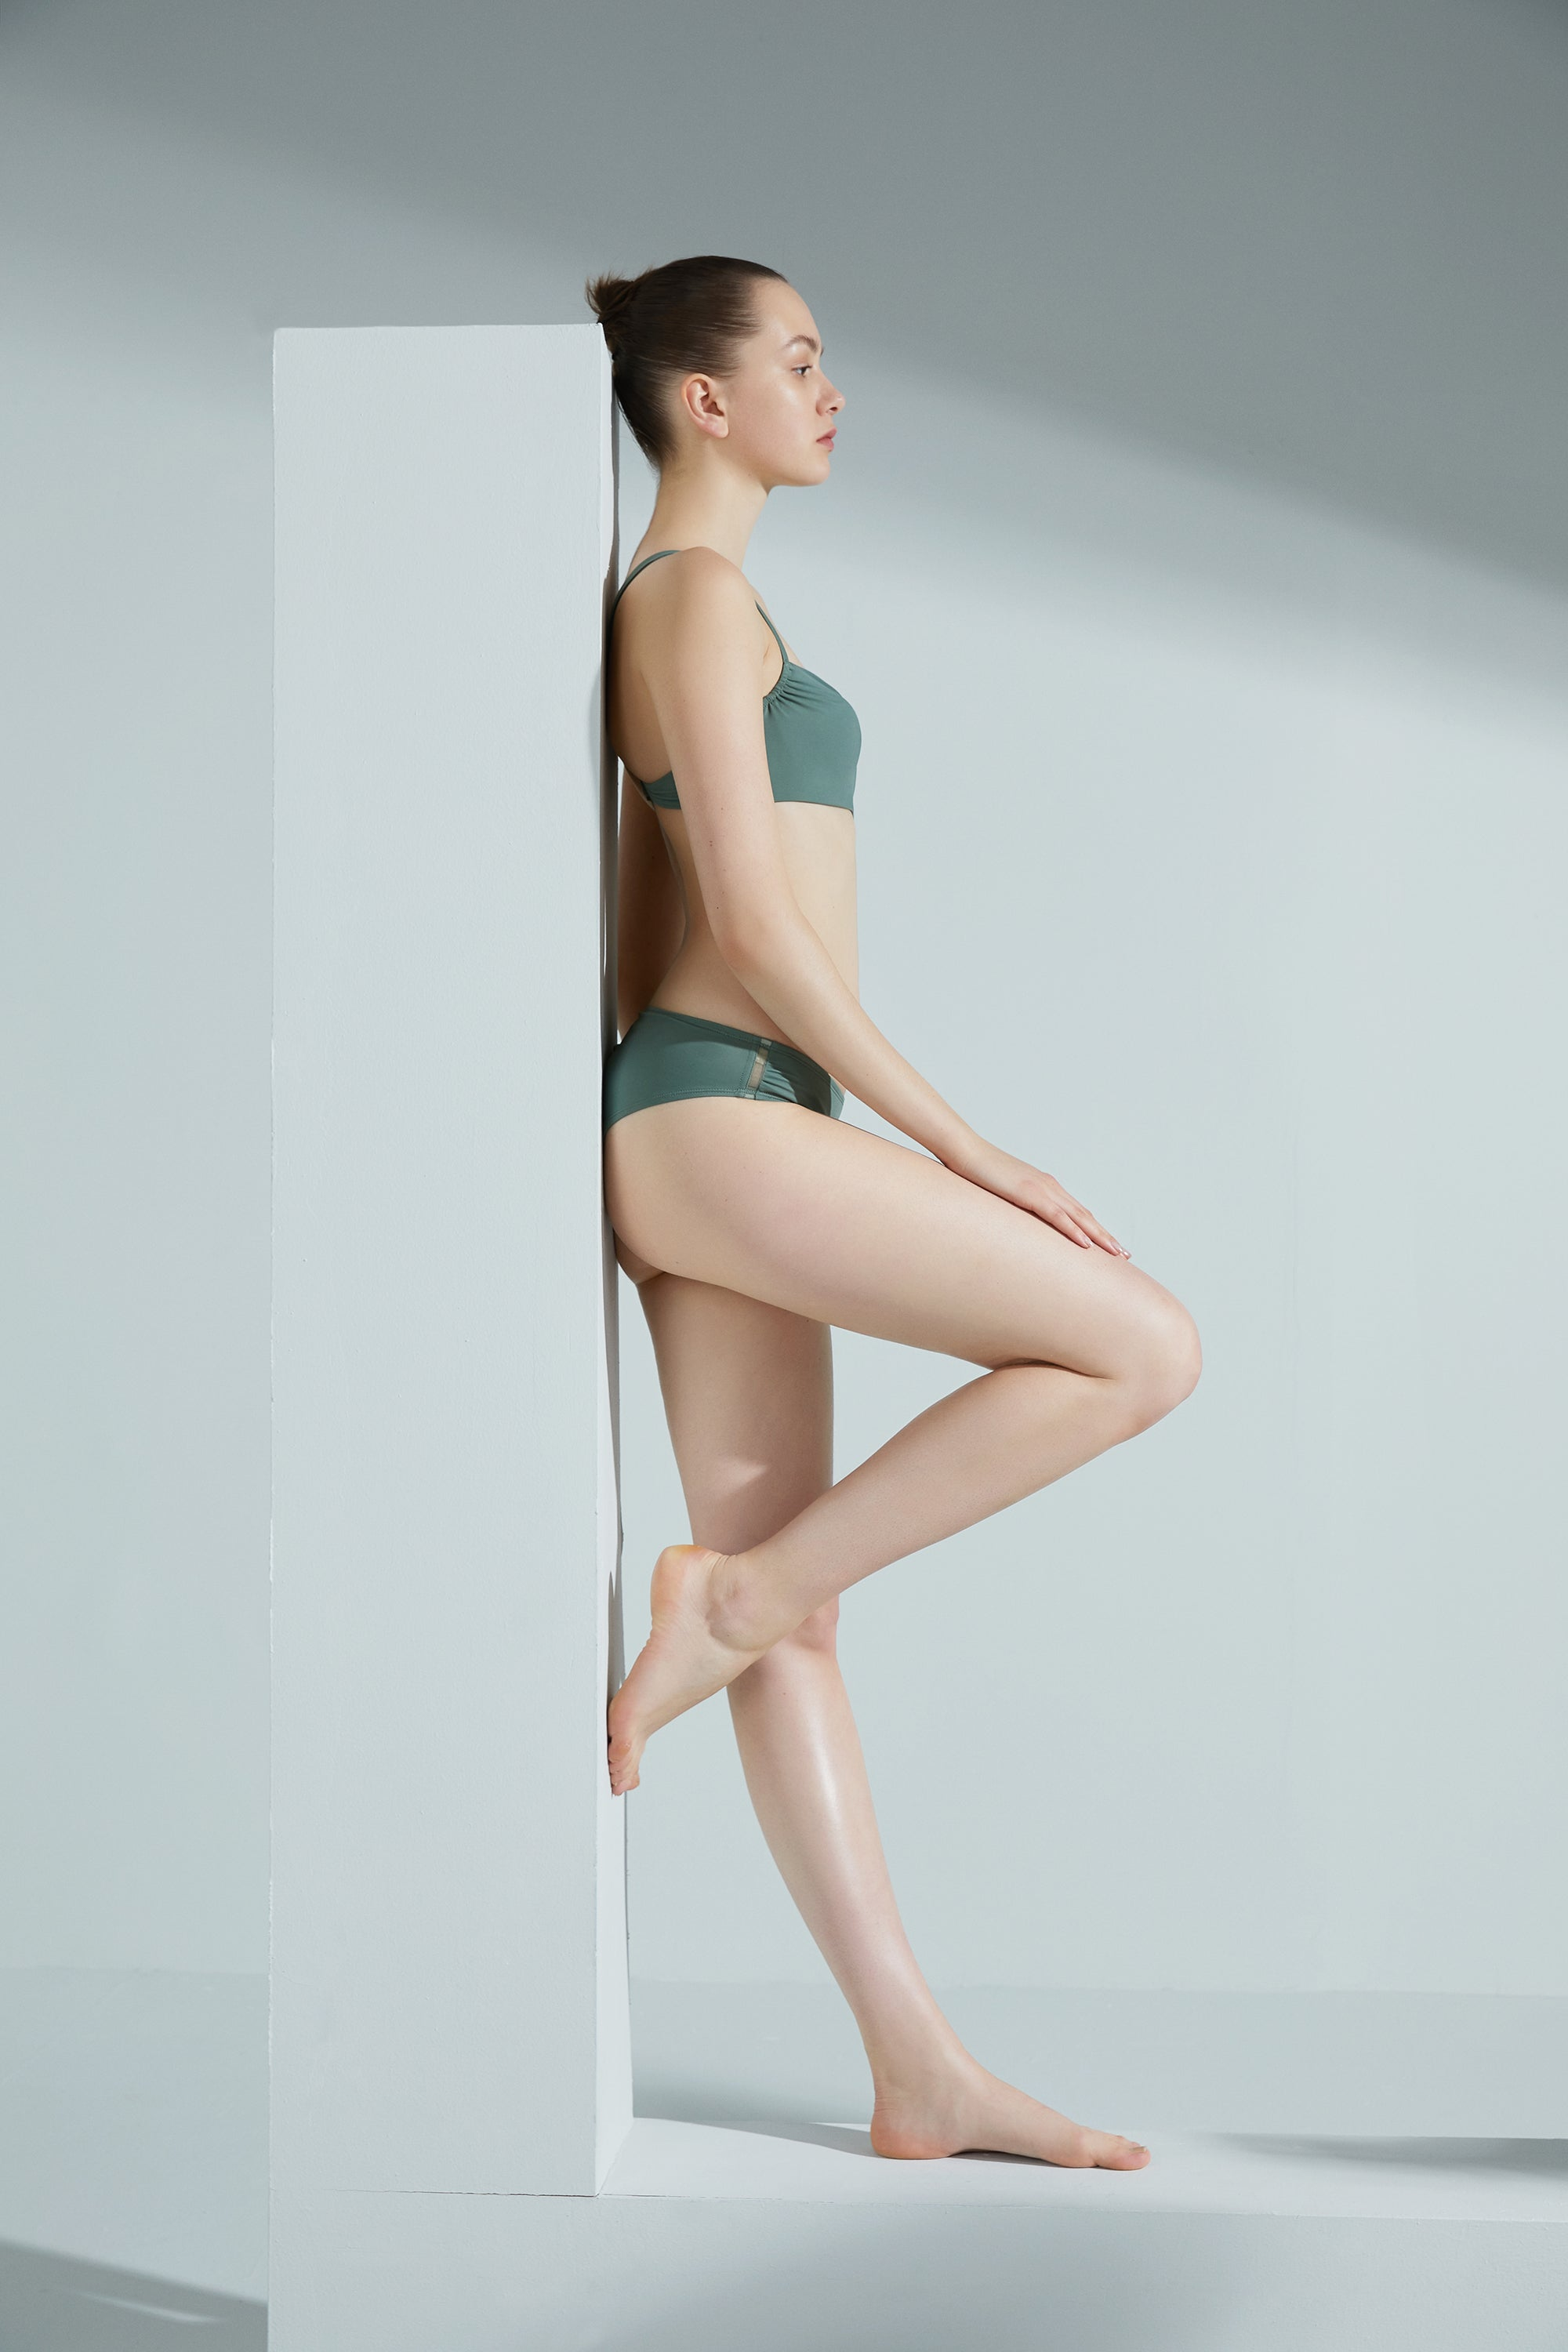 Model wearing NEIWAI's Voyage 1/2 Cup Bandeau Bikini Top in Sagebrush Green.